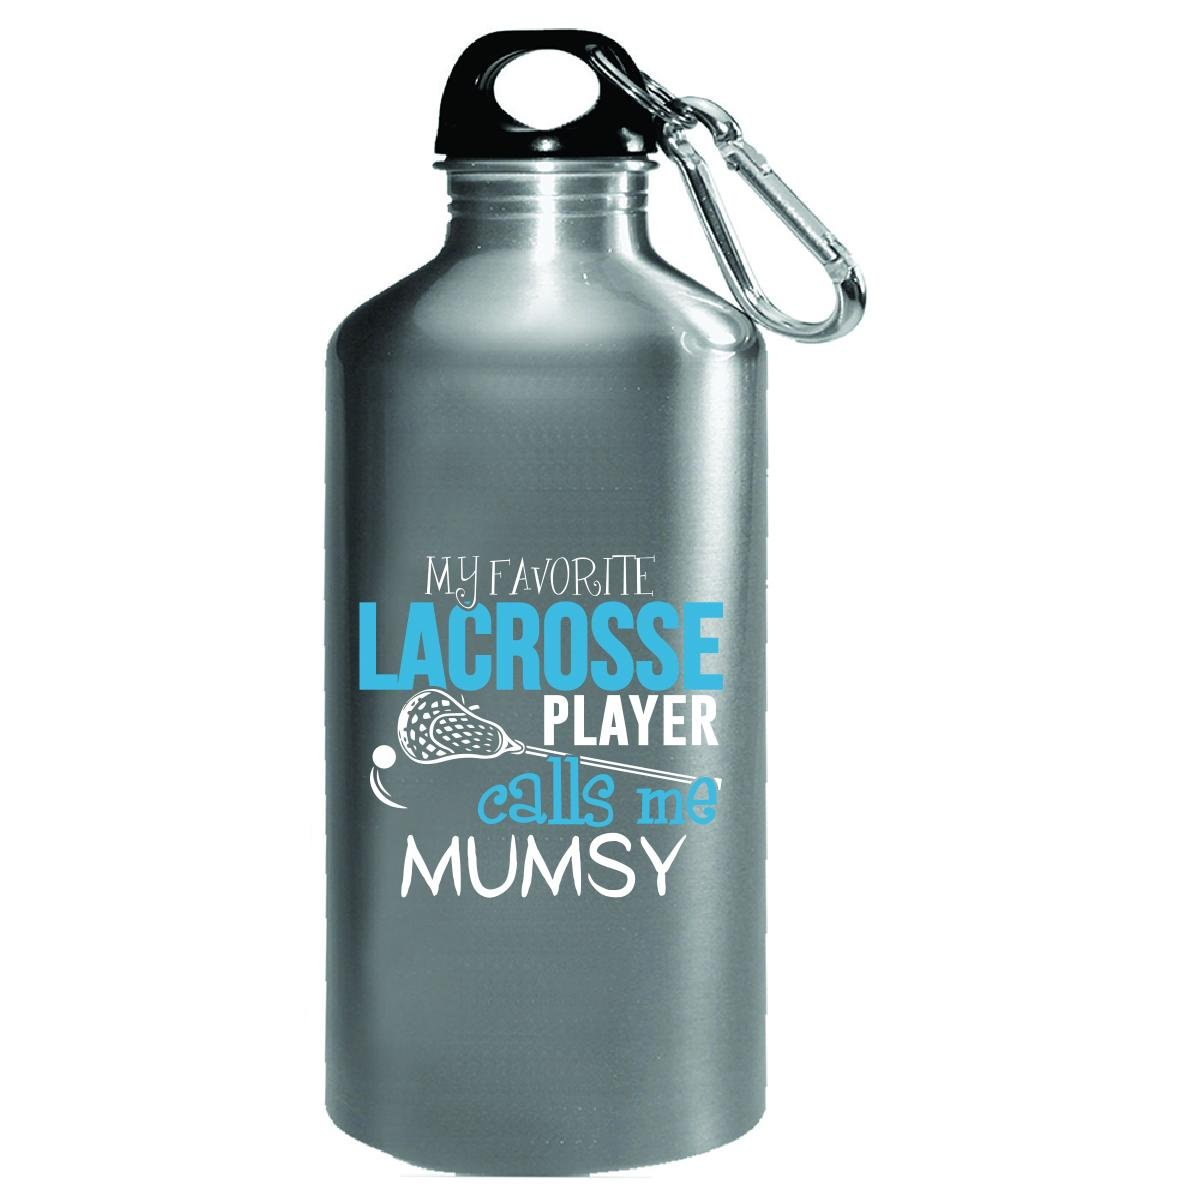 My Favorite Lacrosse Player Calls Me Mumsy - Water Bottle